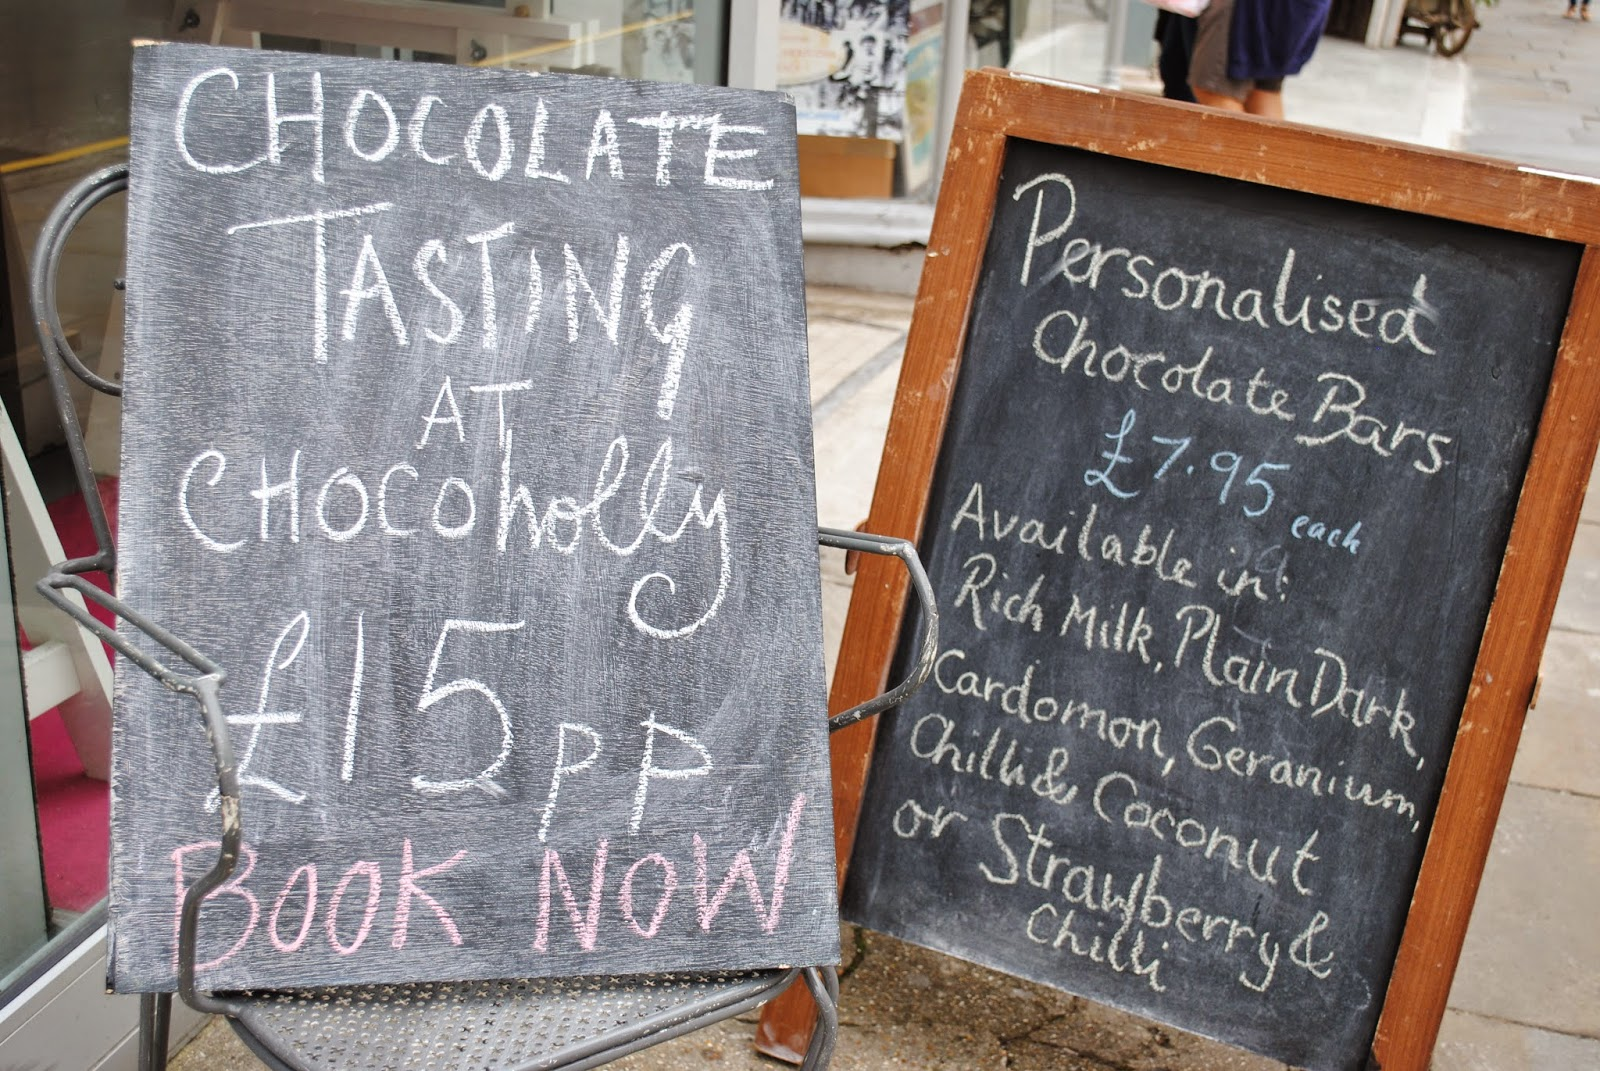 ChocoHolly chocolate tasting at The Chocolate Workshop Hove